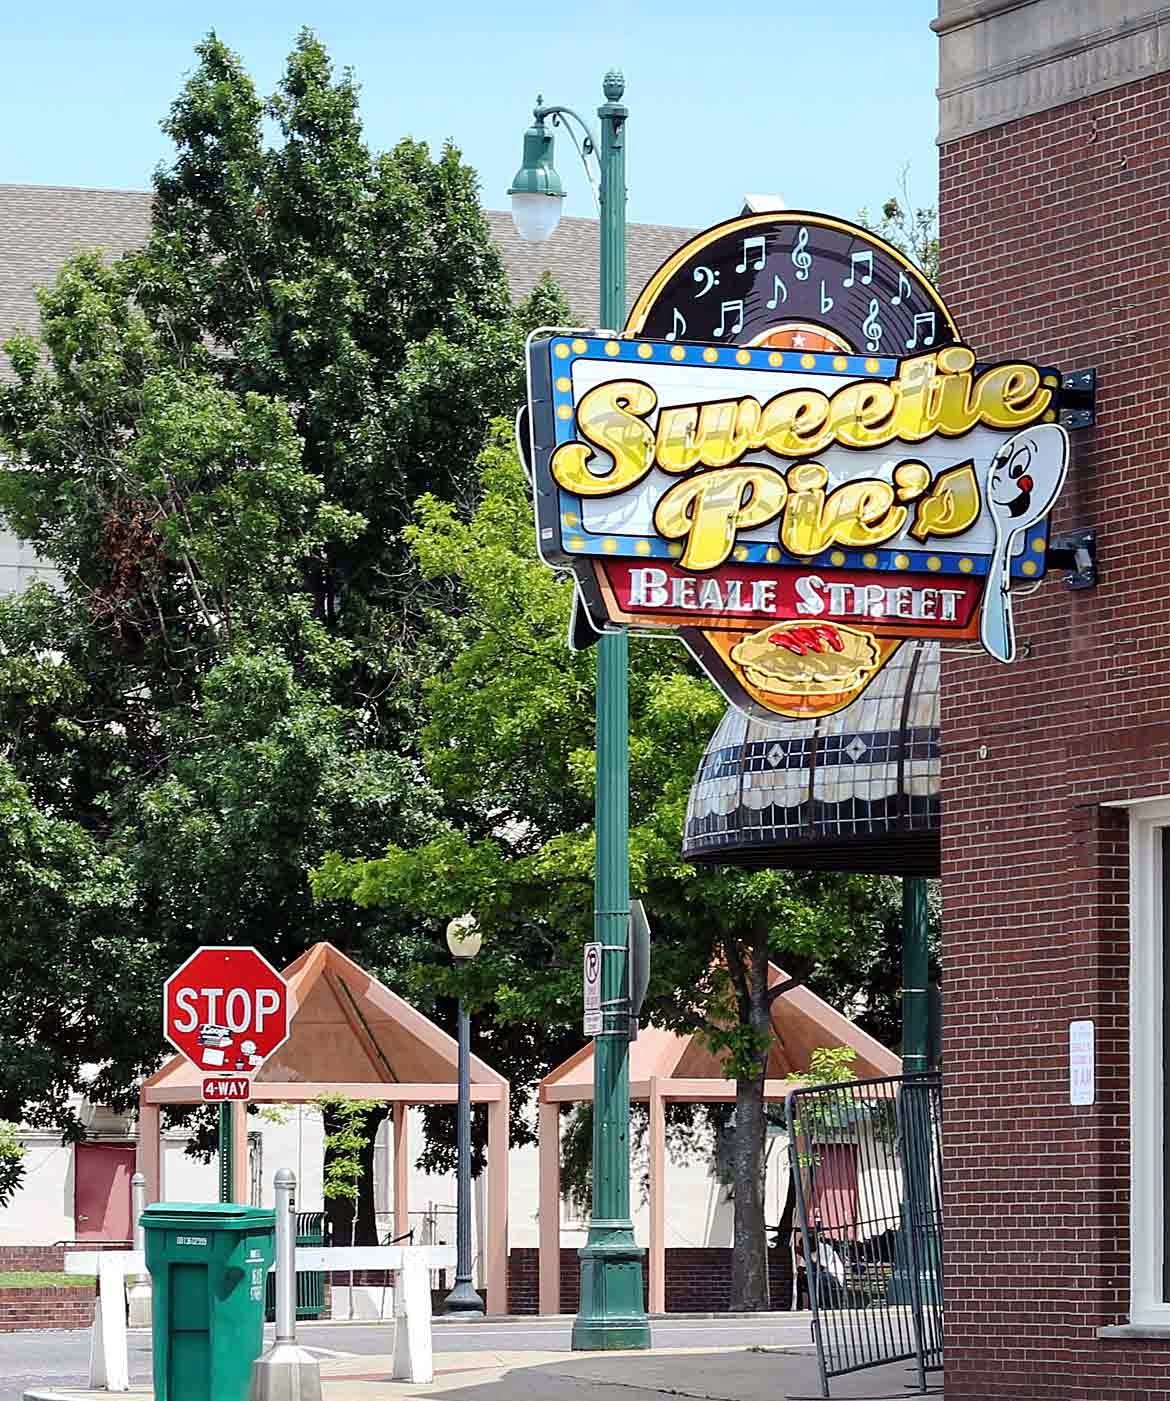 How many sweetie pie restaurants are there